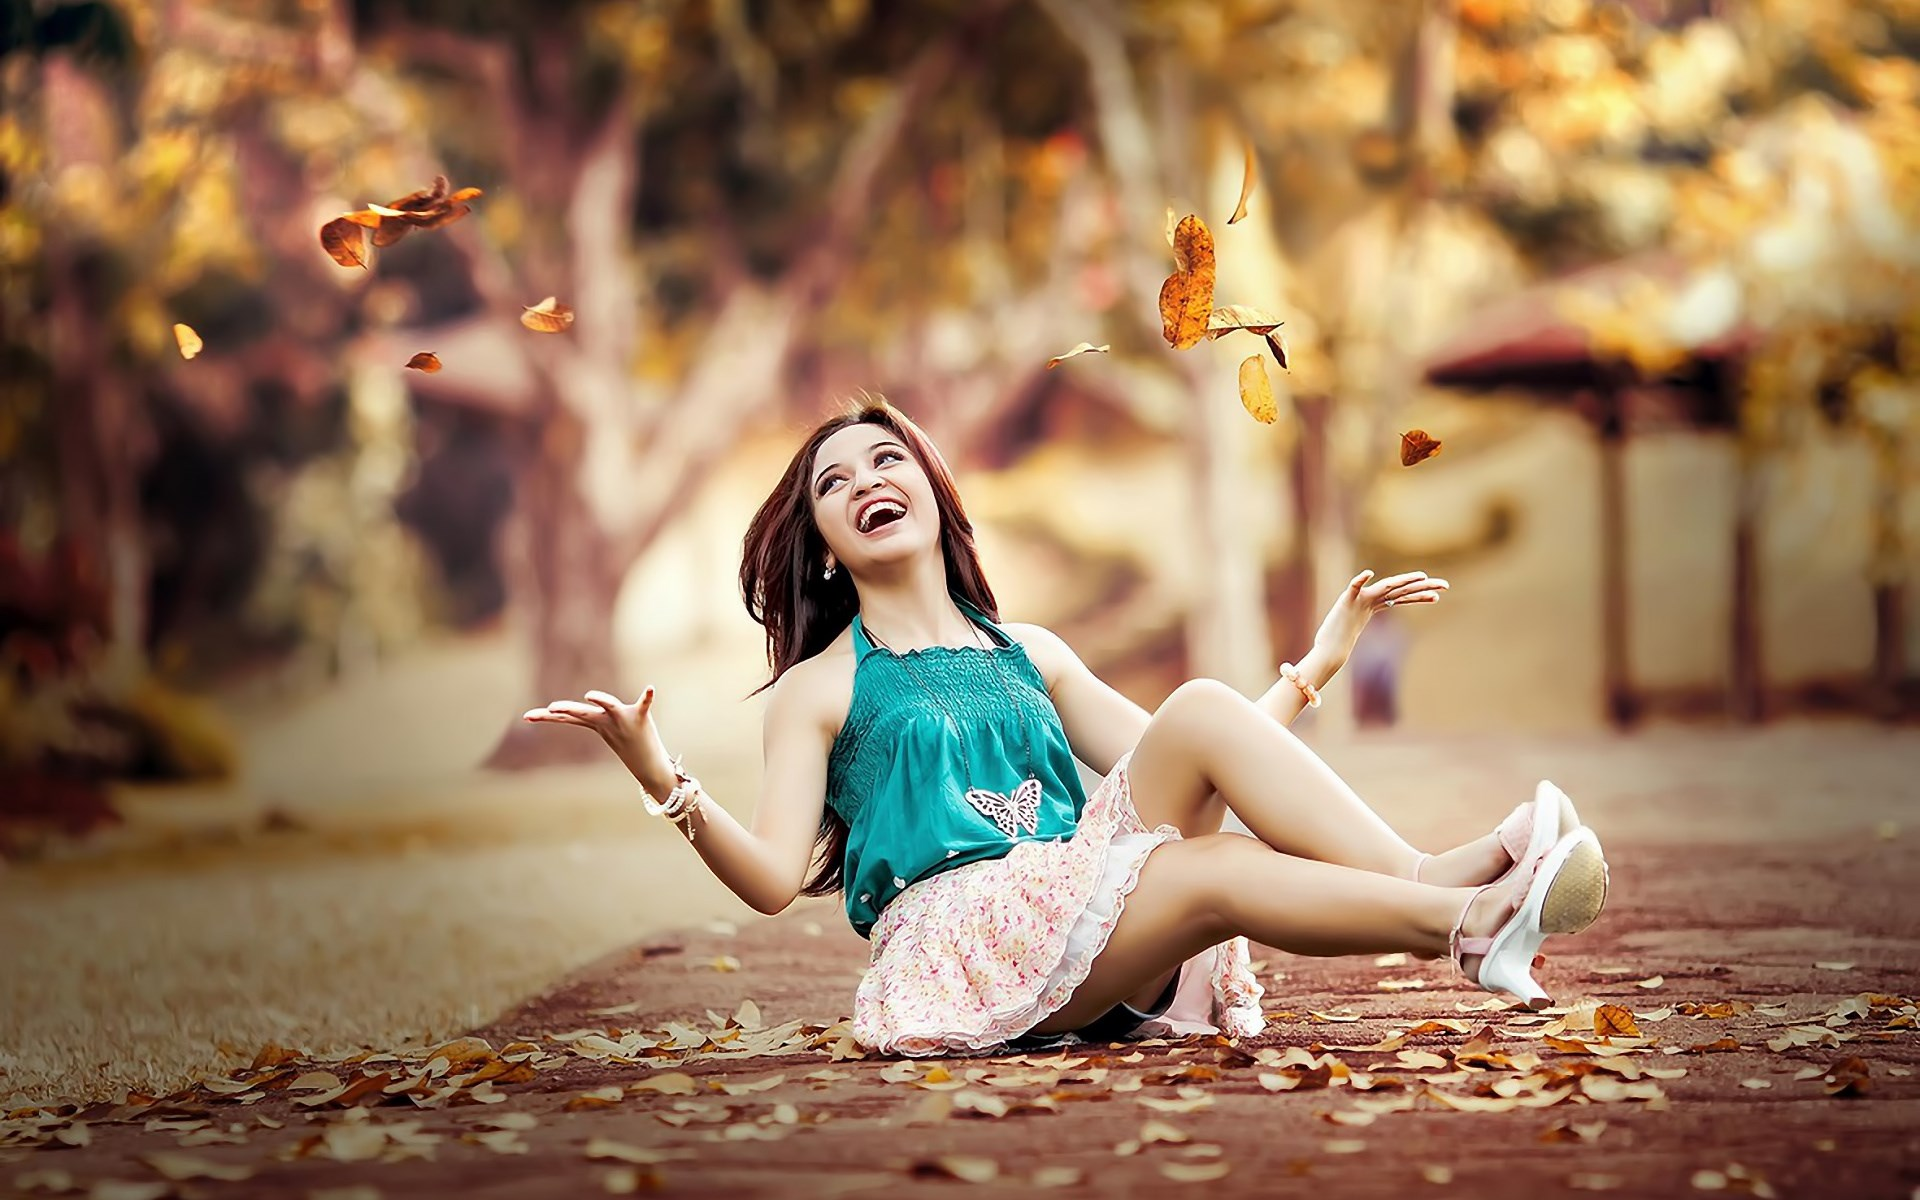 6976135-beauty-girl-road-leaves-autumn